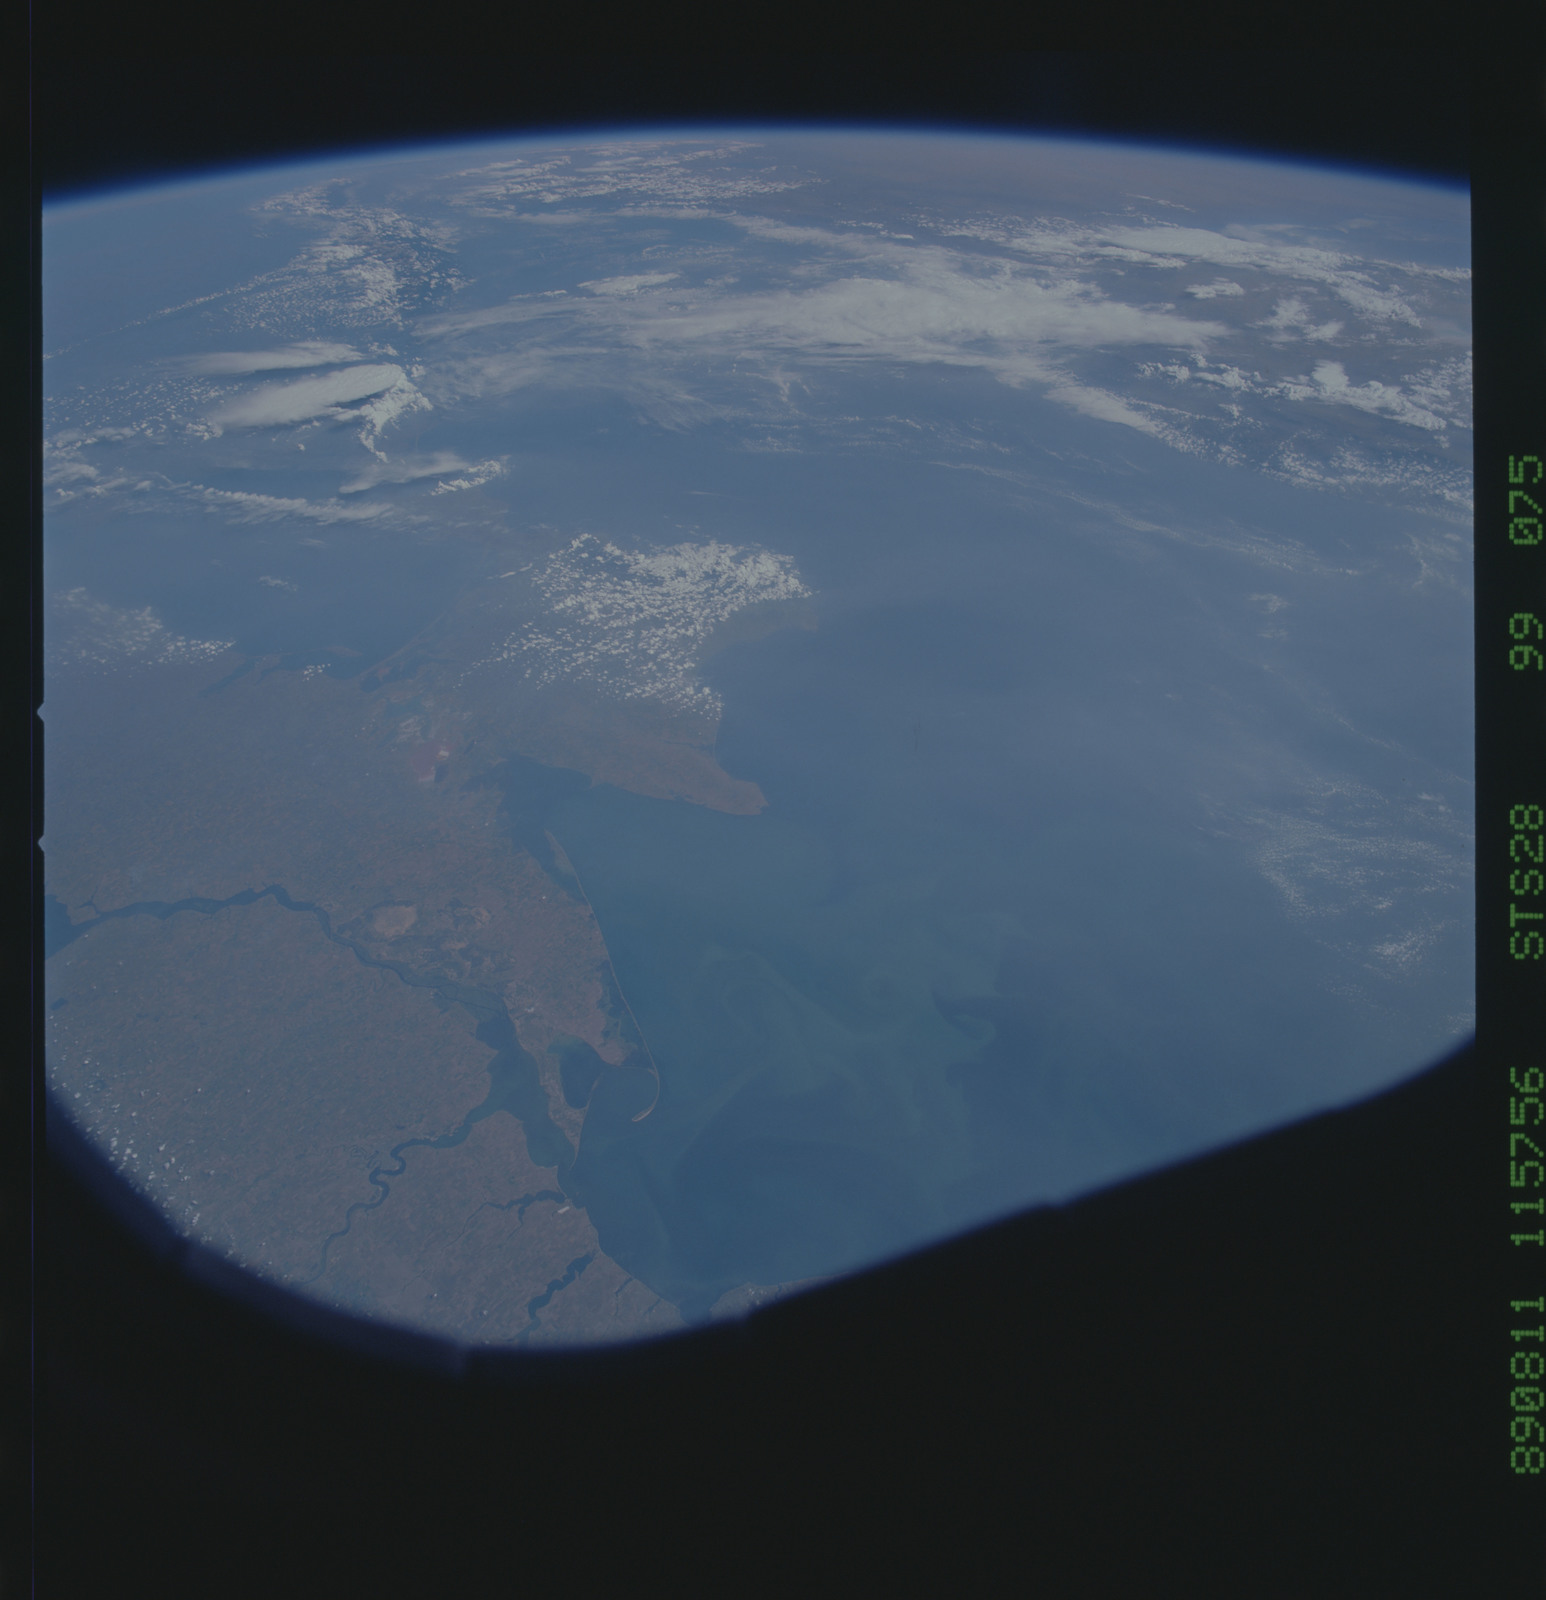 S28-99-075 - STS-028 - STS-28 earth observations